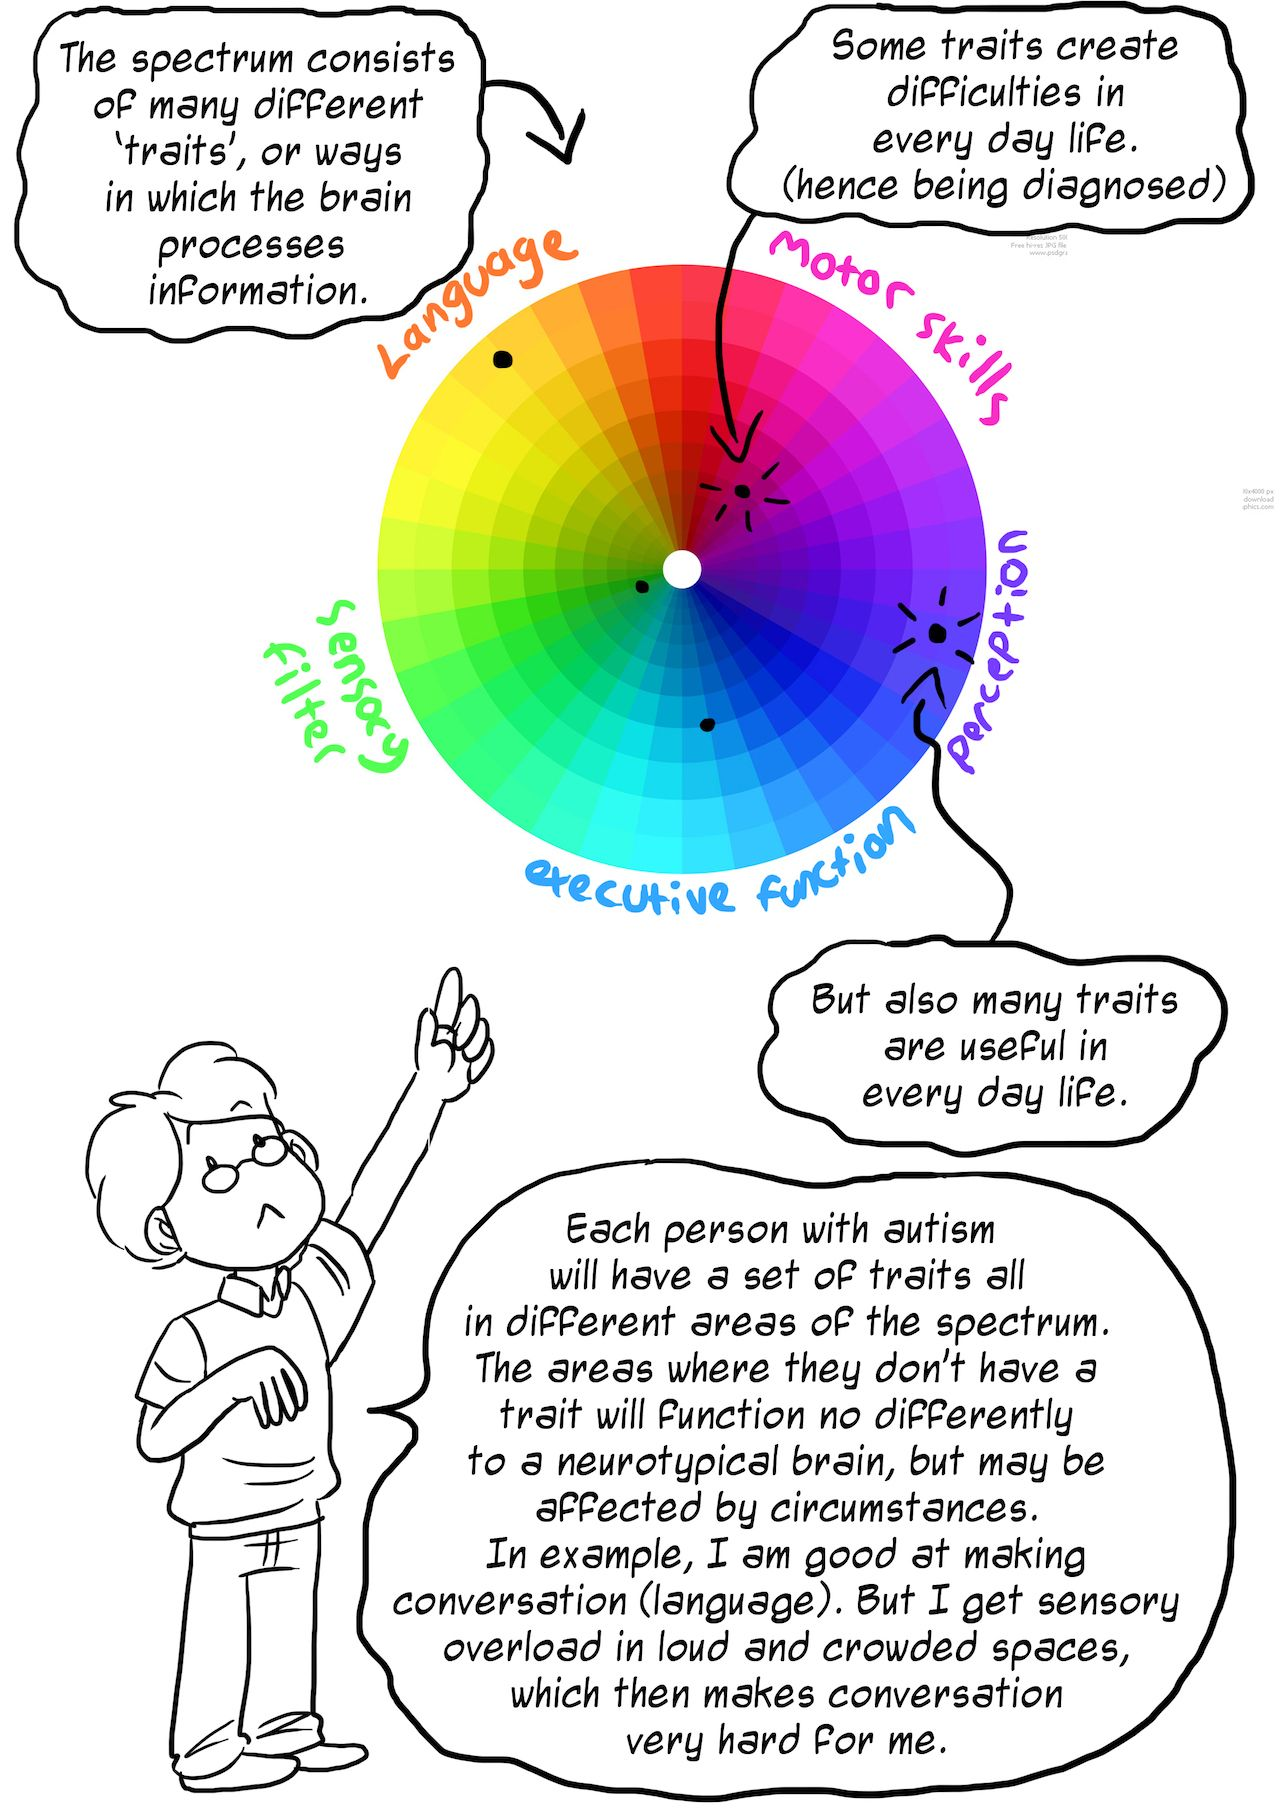 ic Redesigns the Autism Spectrum to Crush Stereotypes